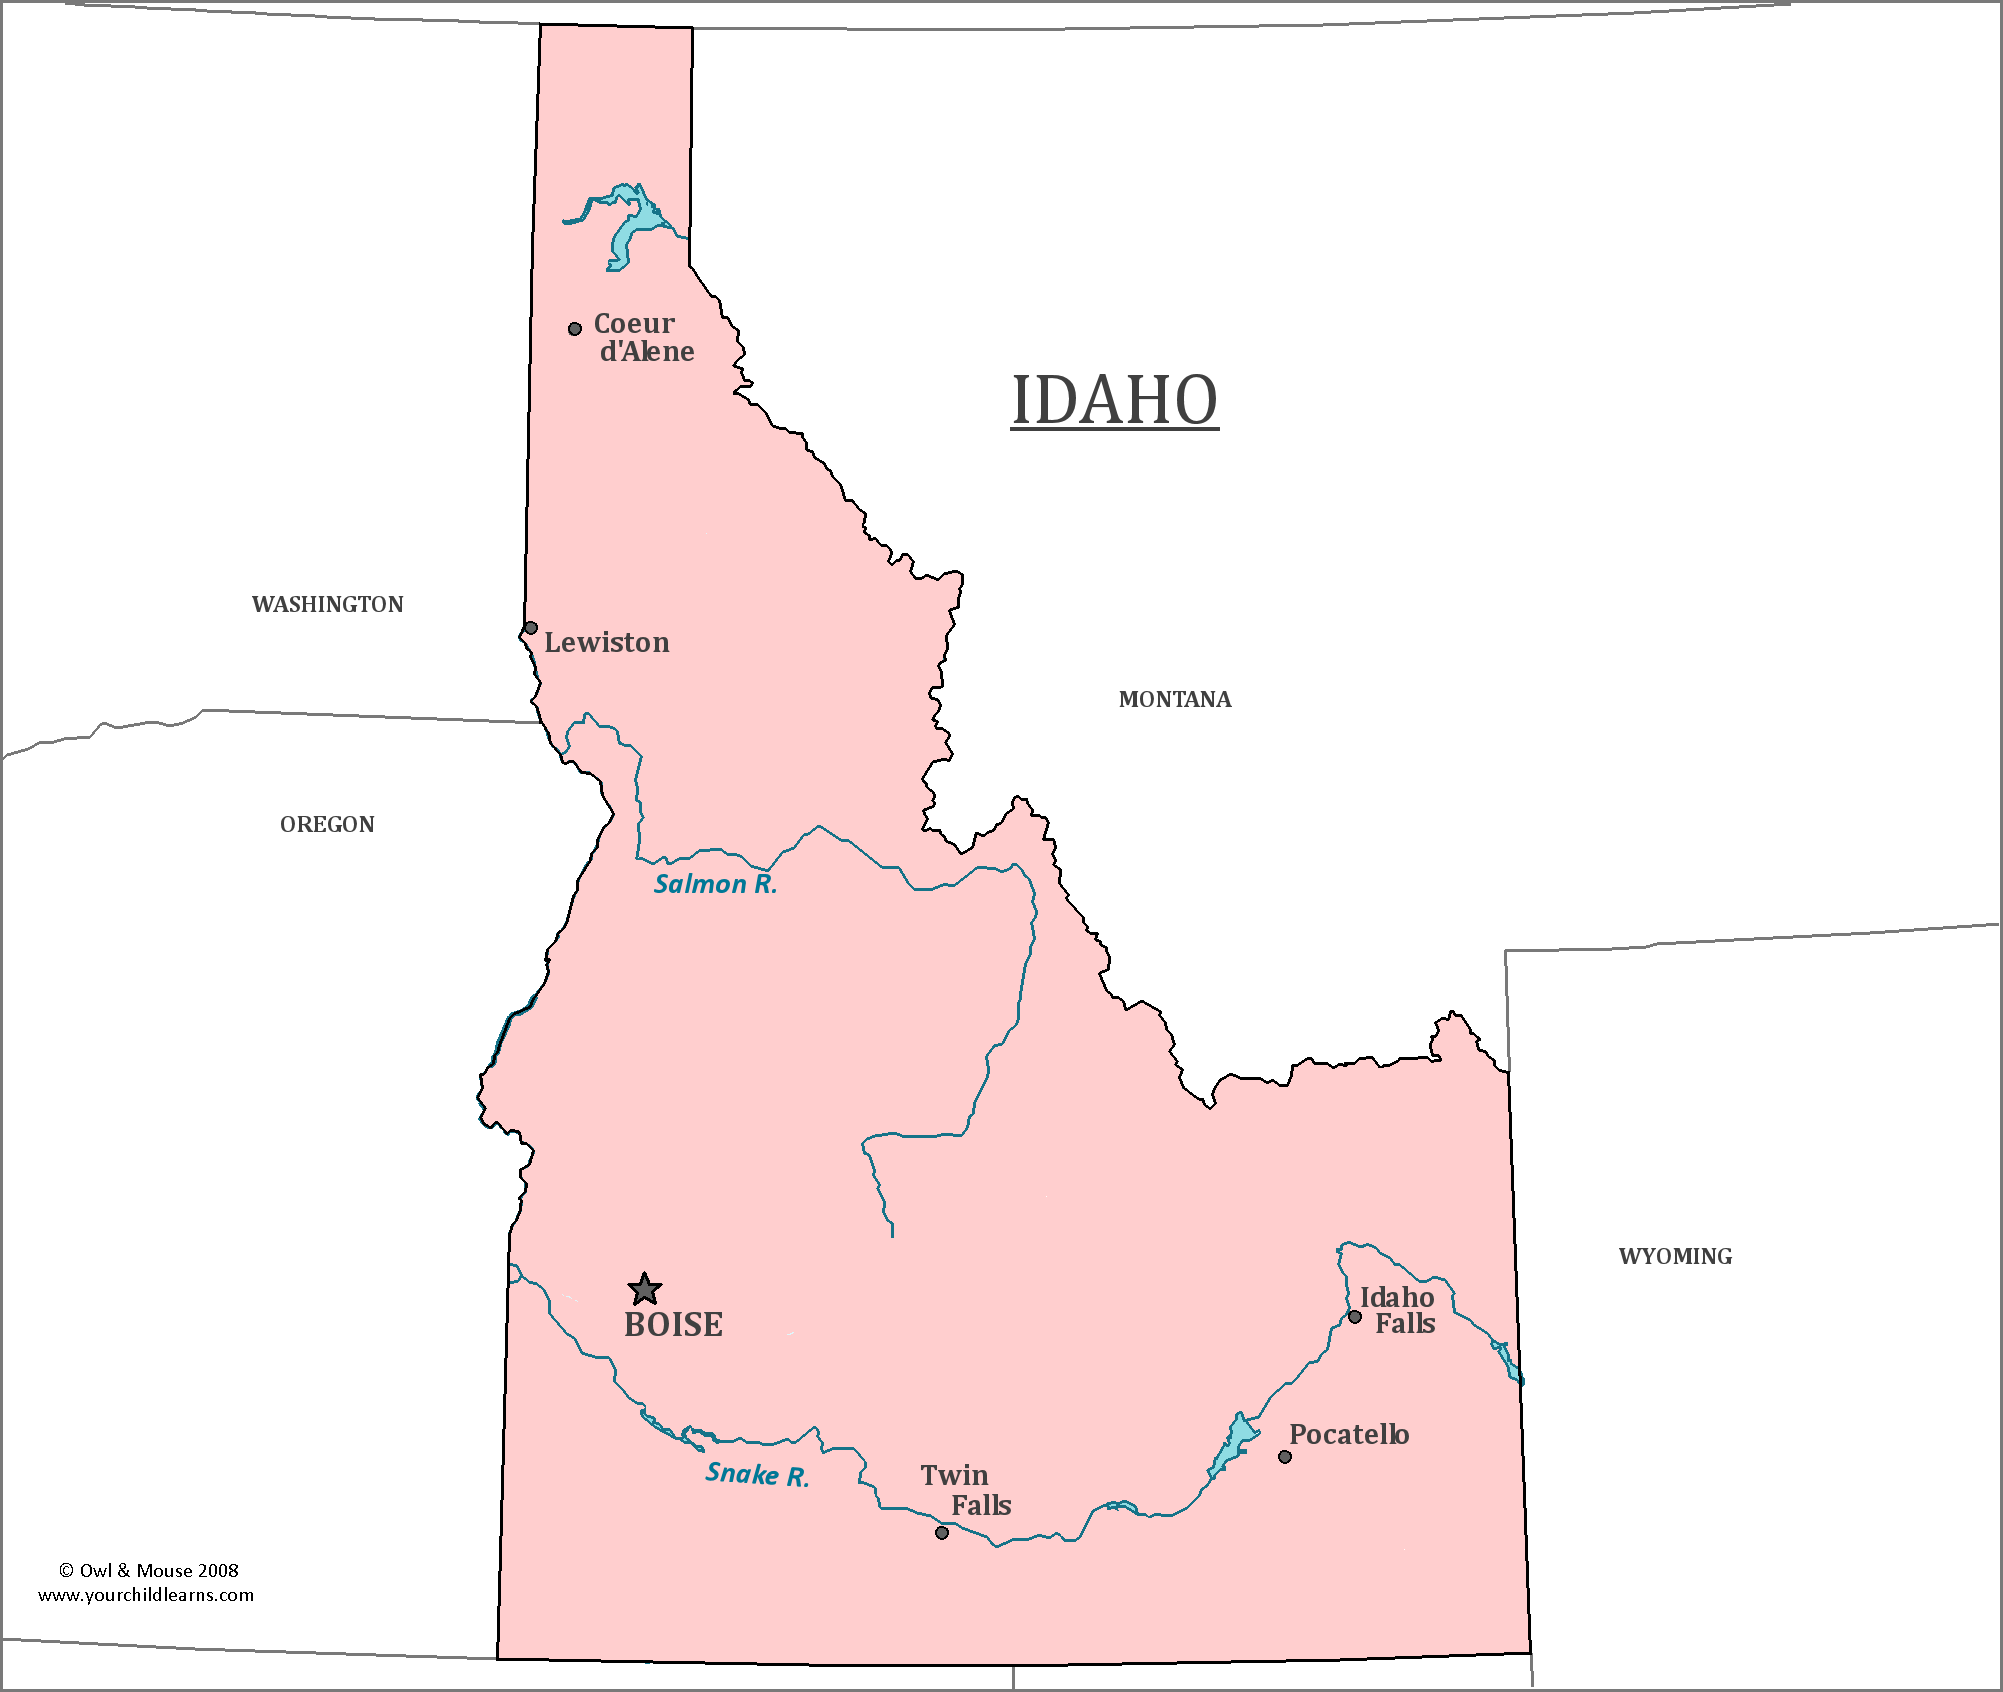 Idaho State Map Idaho State Map   Map of Idaho and Information About the State Idaho State Map